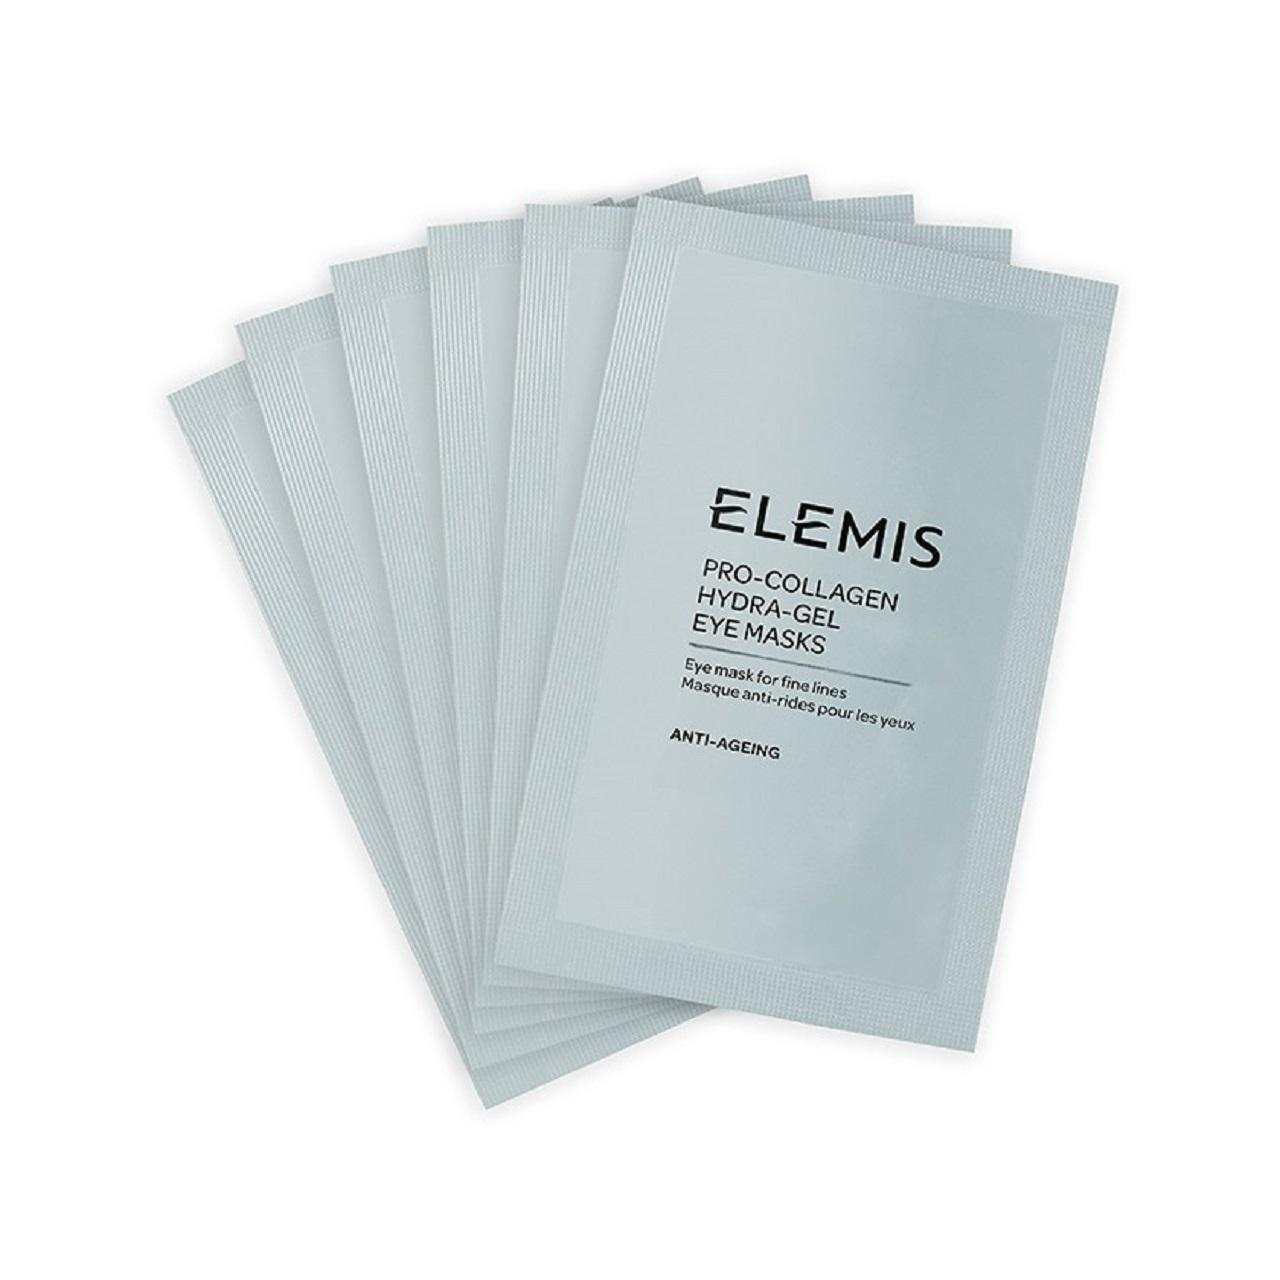 An image of ELEMIS Pro-Collagen Hydra-Gel Mask